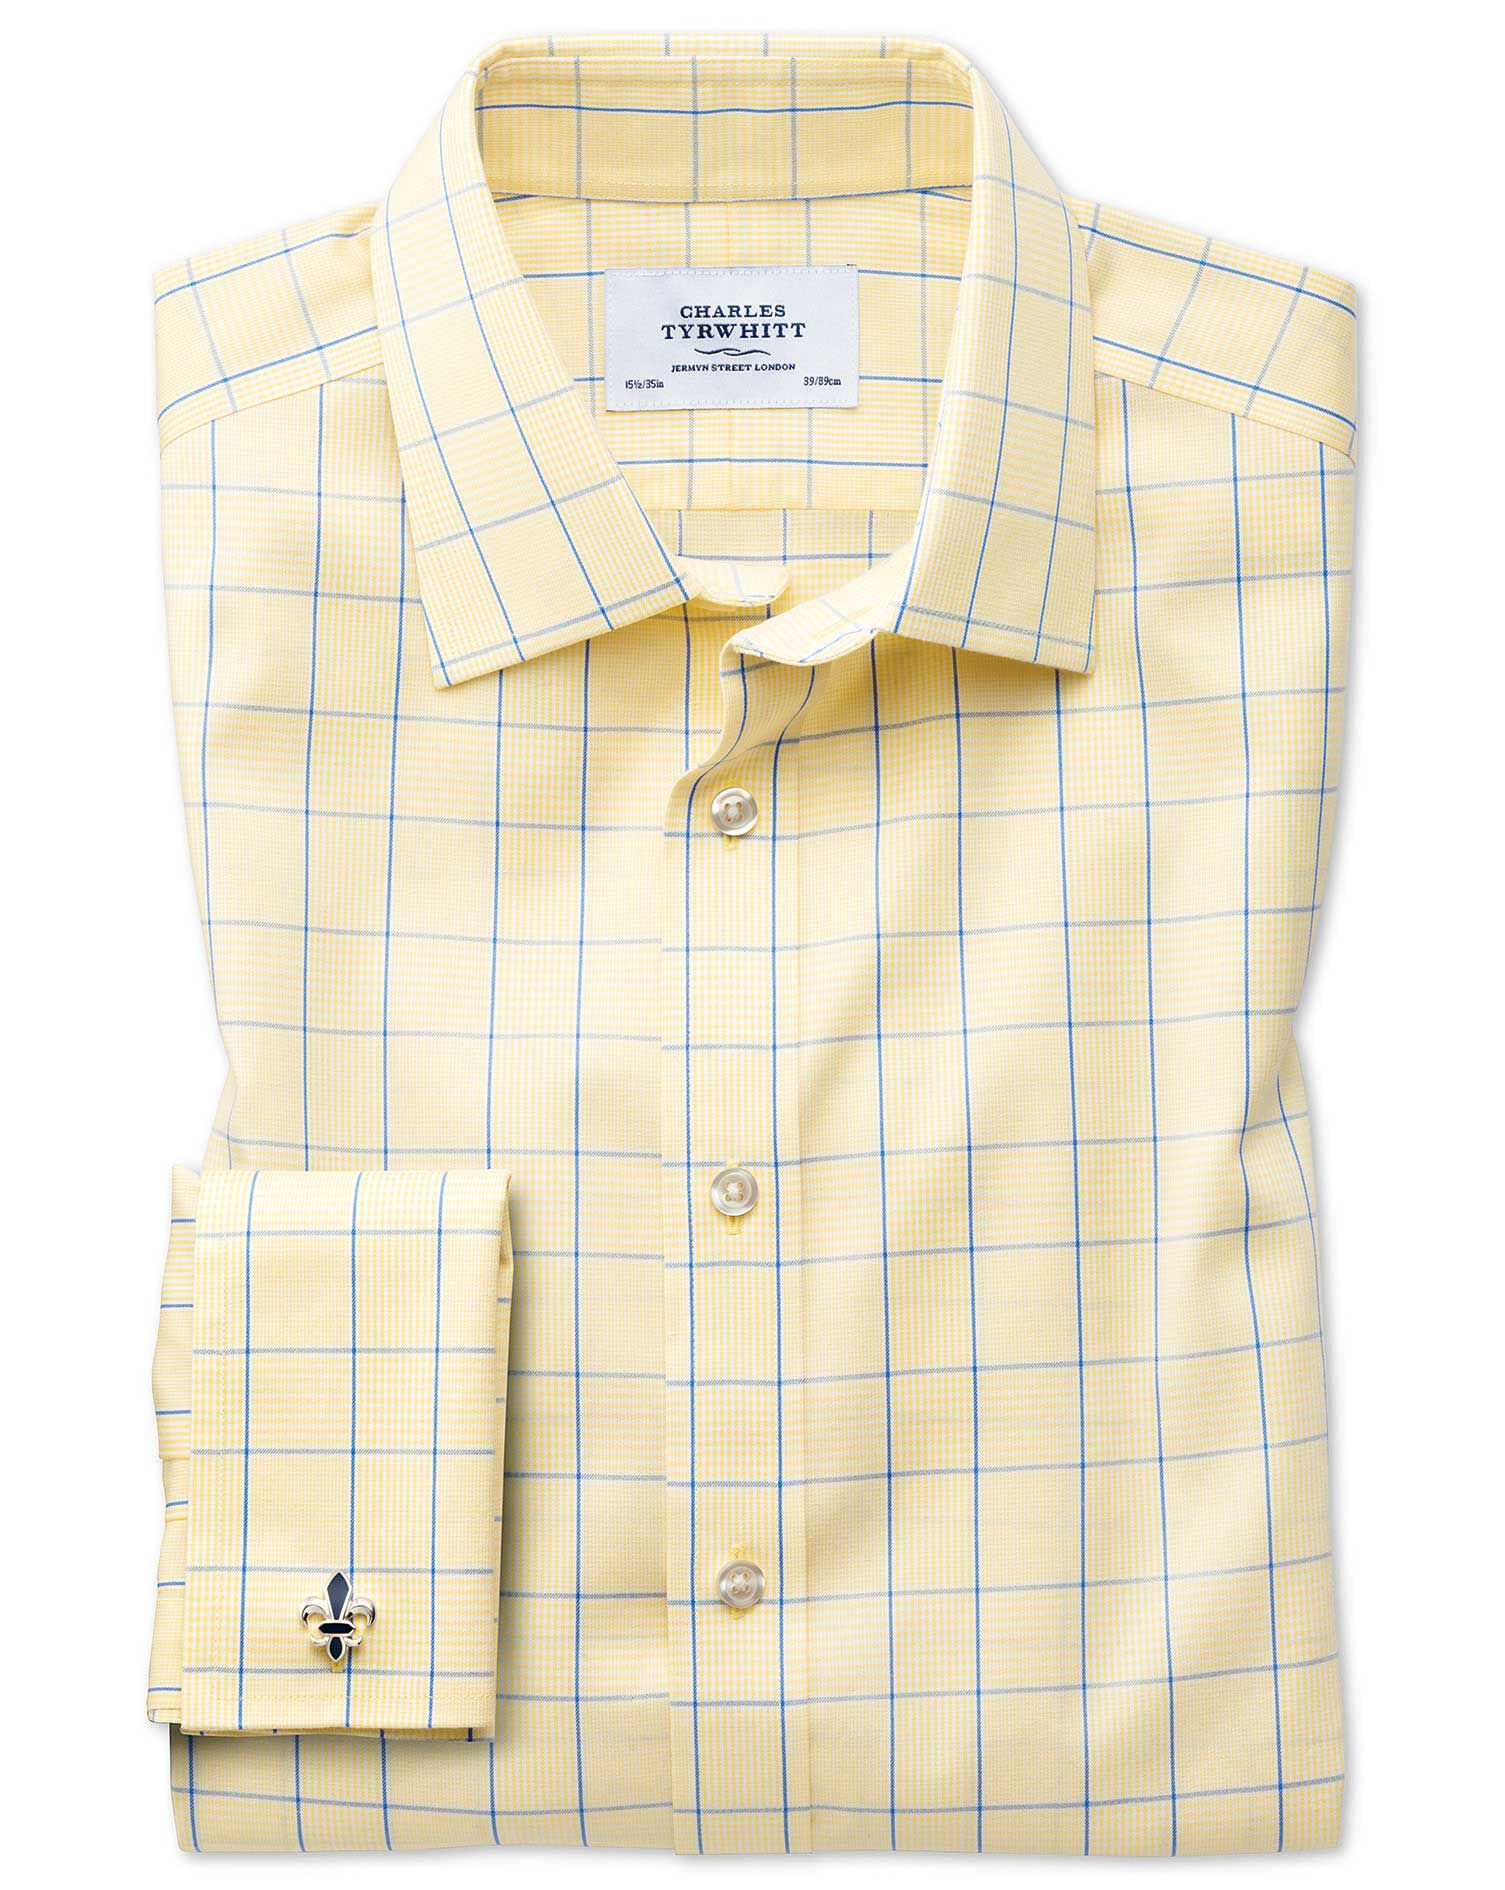 Classic Fit Non-Iron Prince Of Wales Yellow and Royal Blue Cotton Formal Shirt Single Cuff Size 16.5